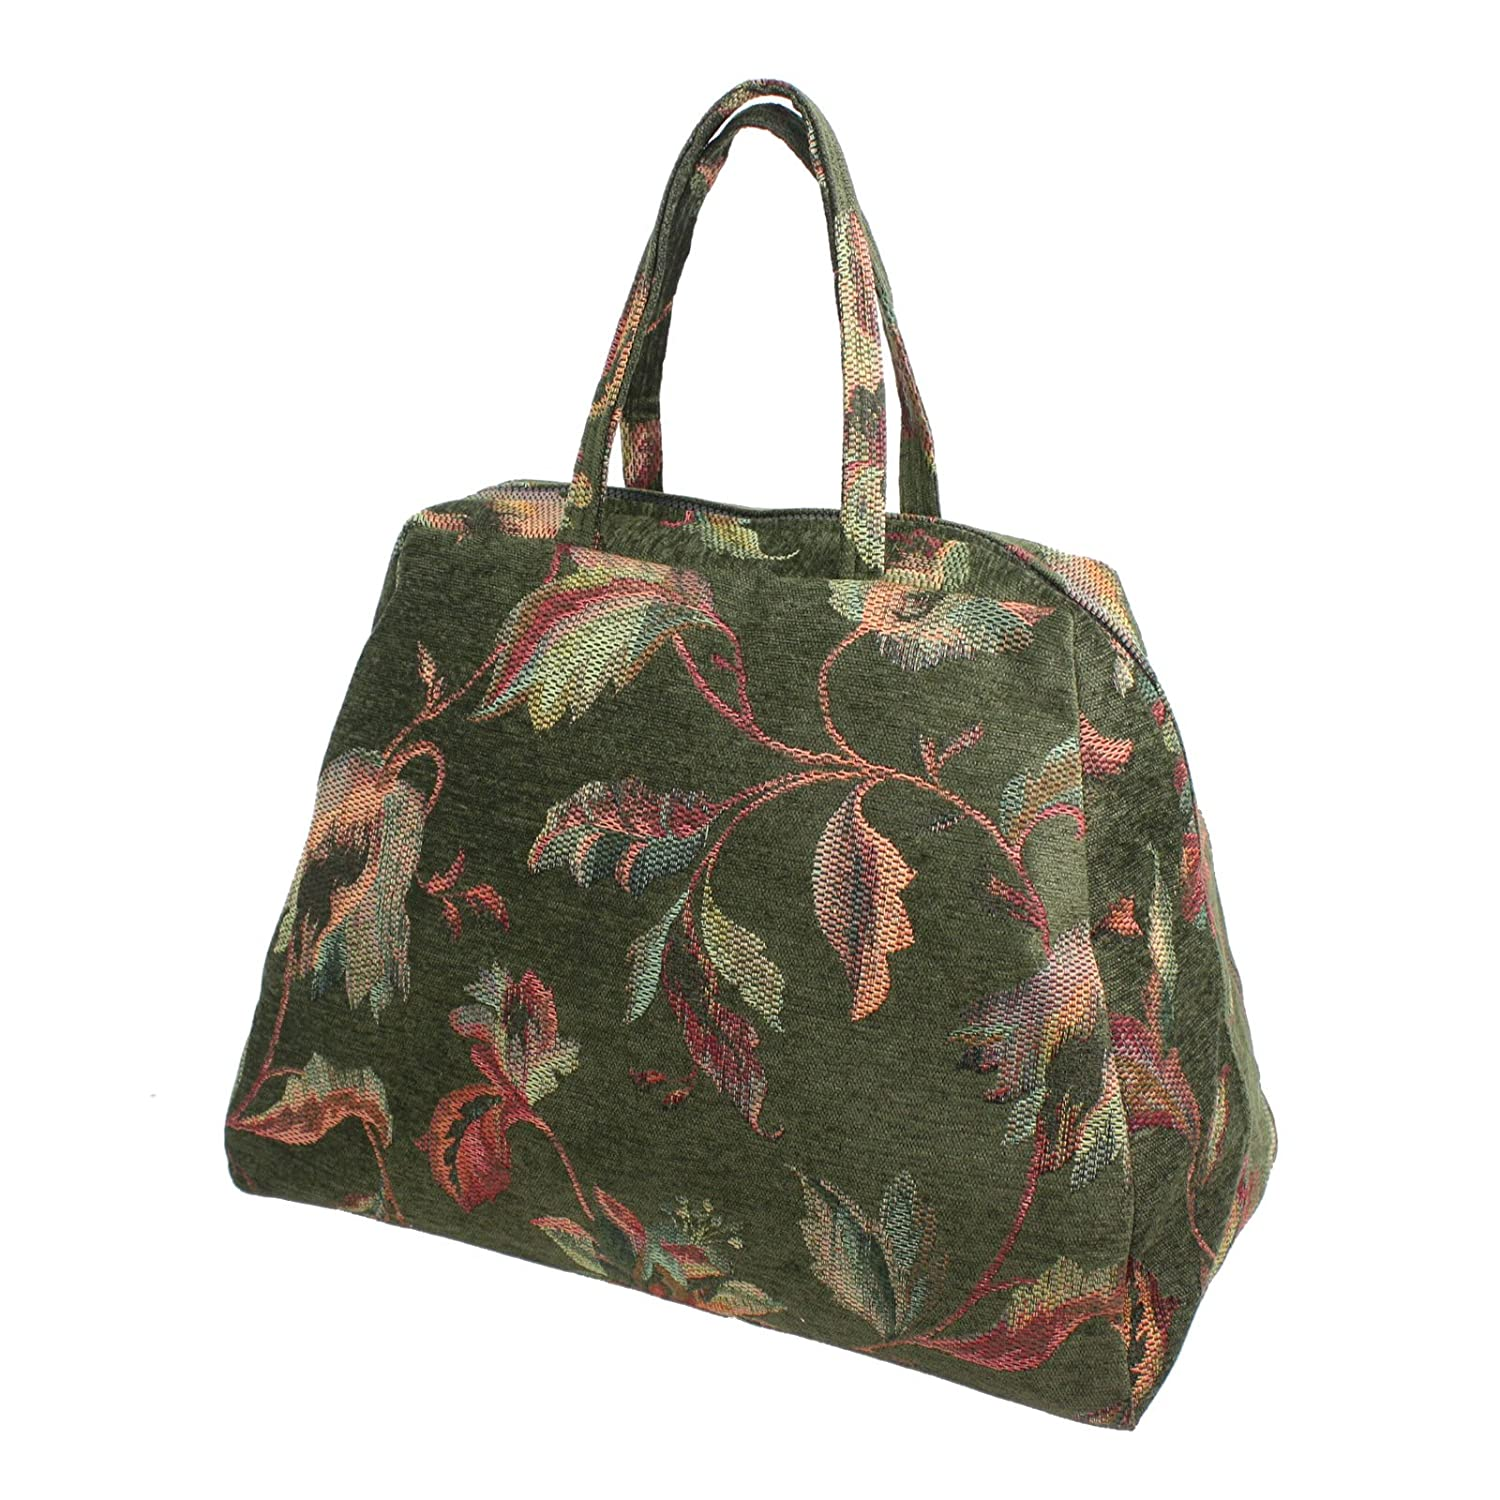 Vintage & Retro Handbags, Purses, Wallets, Bags Deluxe Mary Poppins Carpet Bag $98.88 AT vintagedancer.com